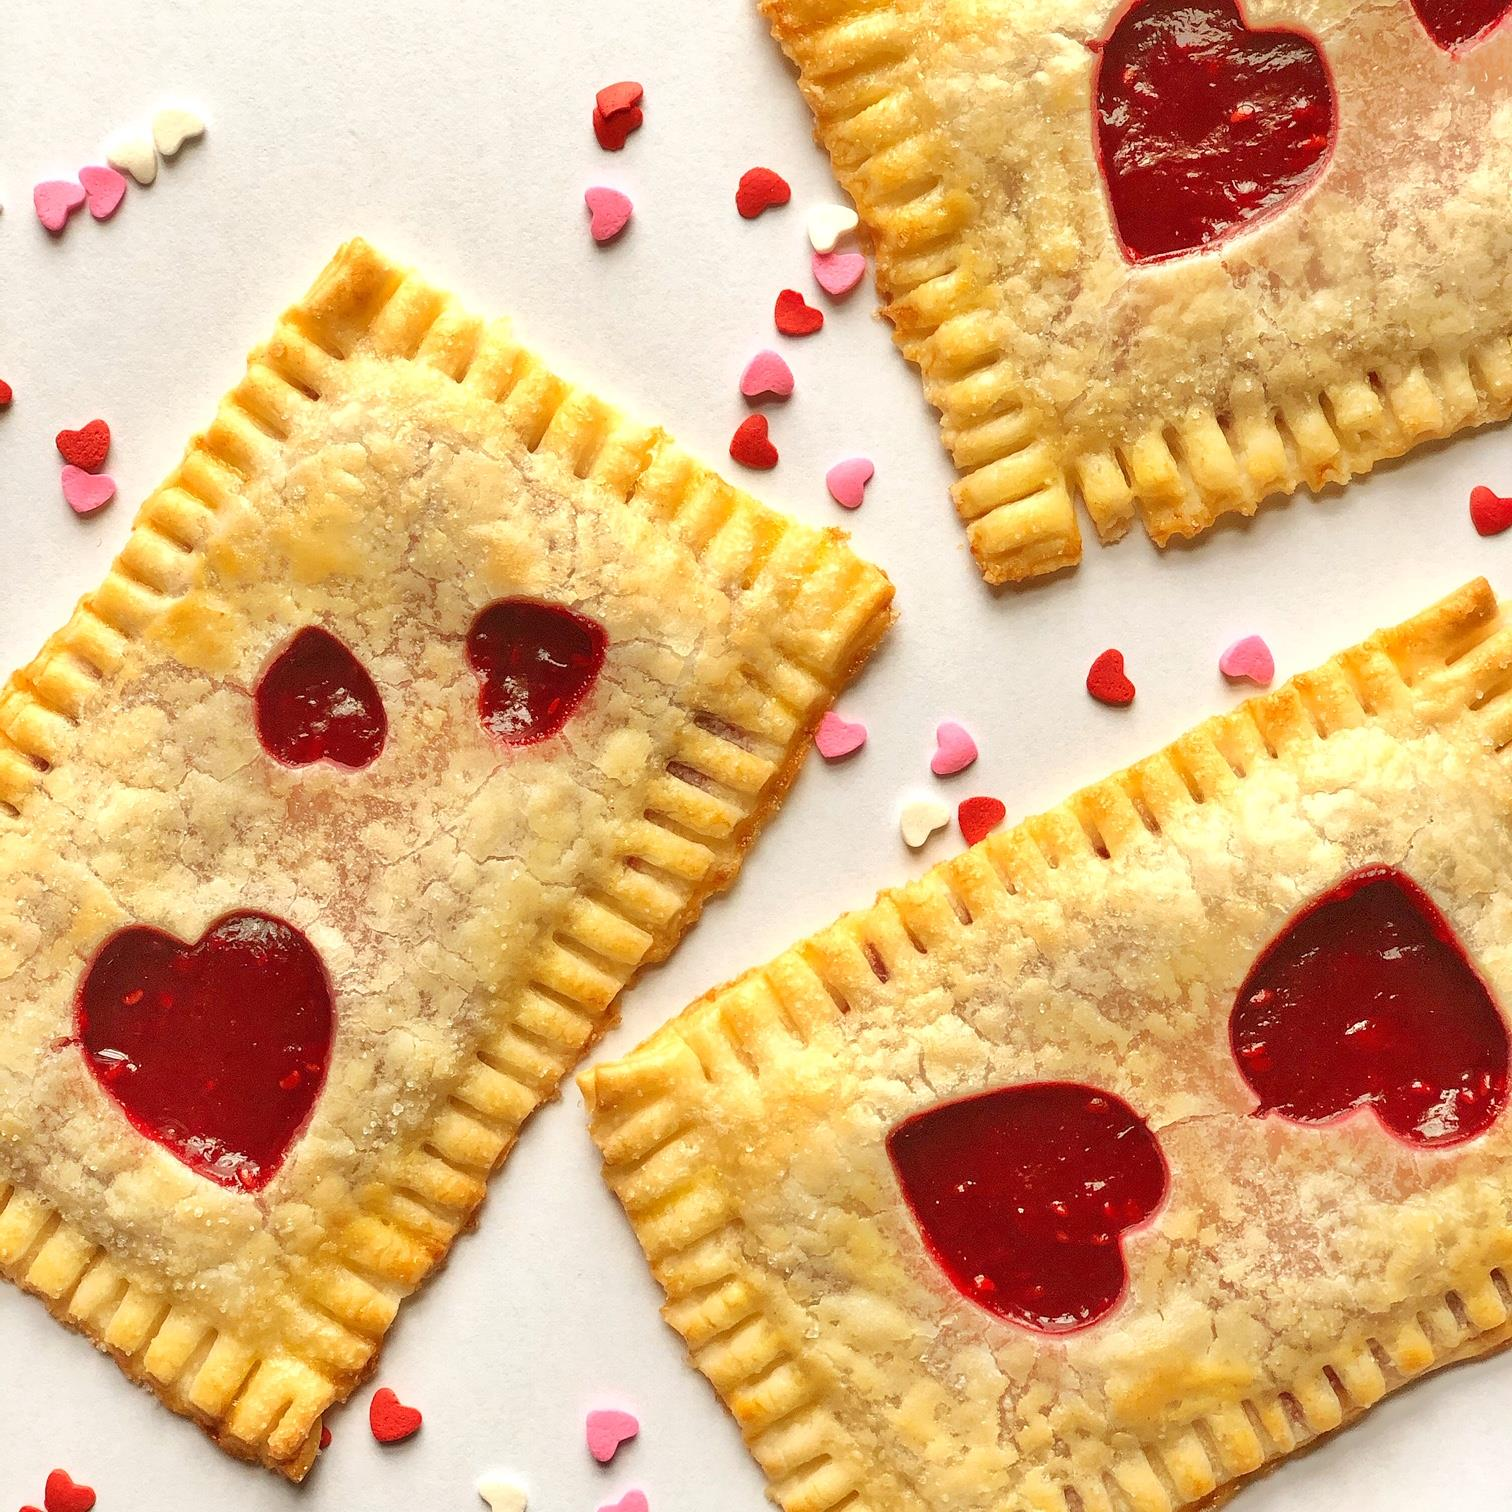 Homemade Pop Tarts at Felt Manor